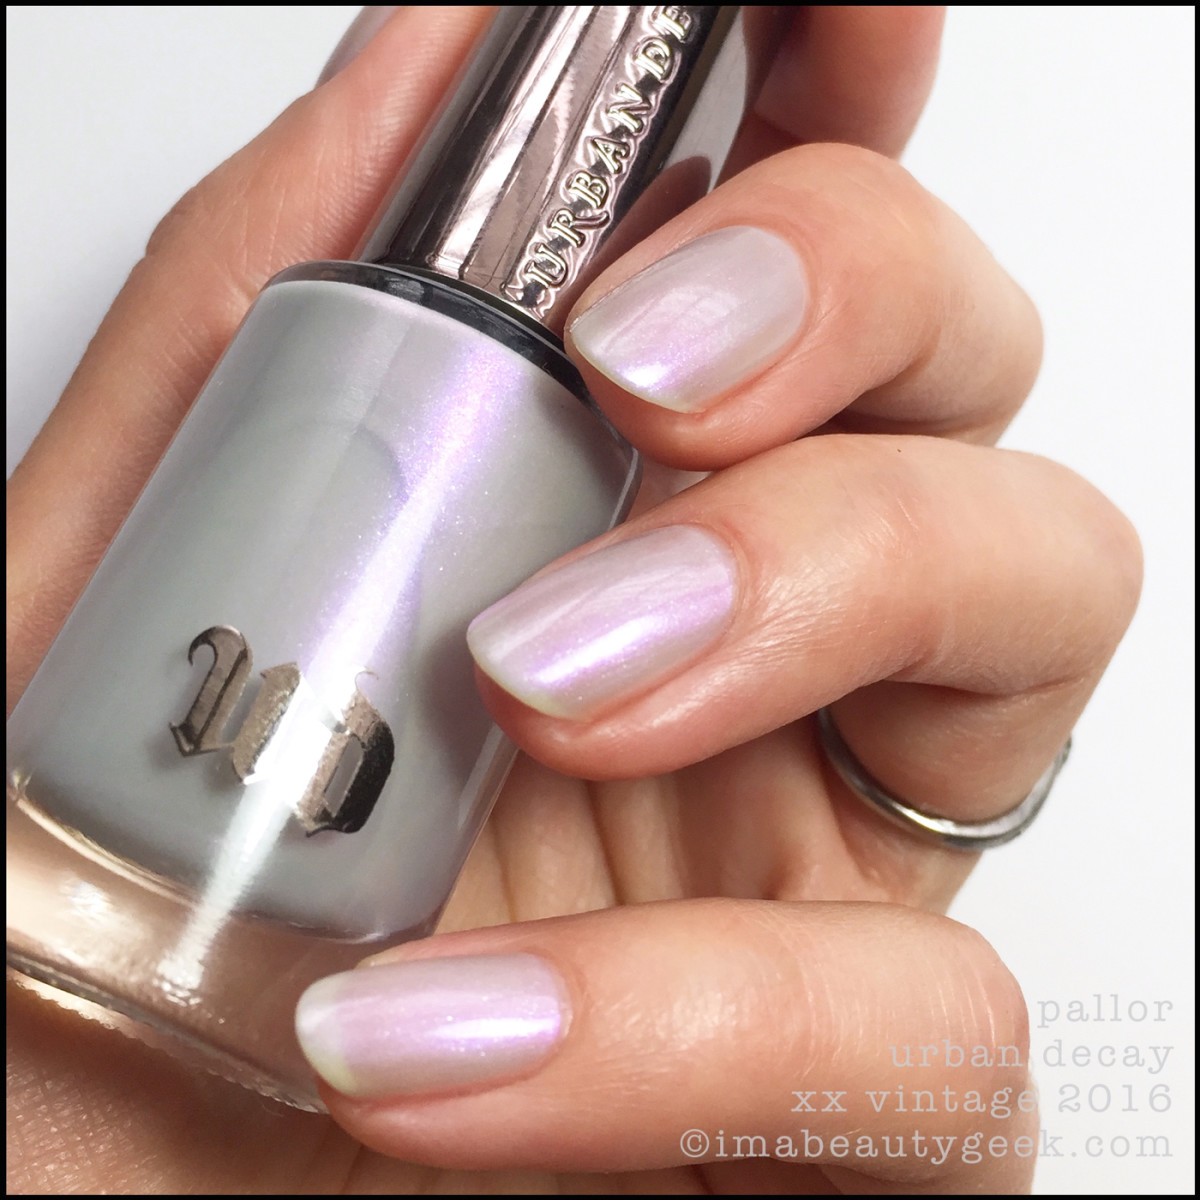 Urban Decay Pallor Nail Polish Vintage Swatches 2016